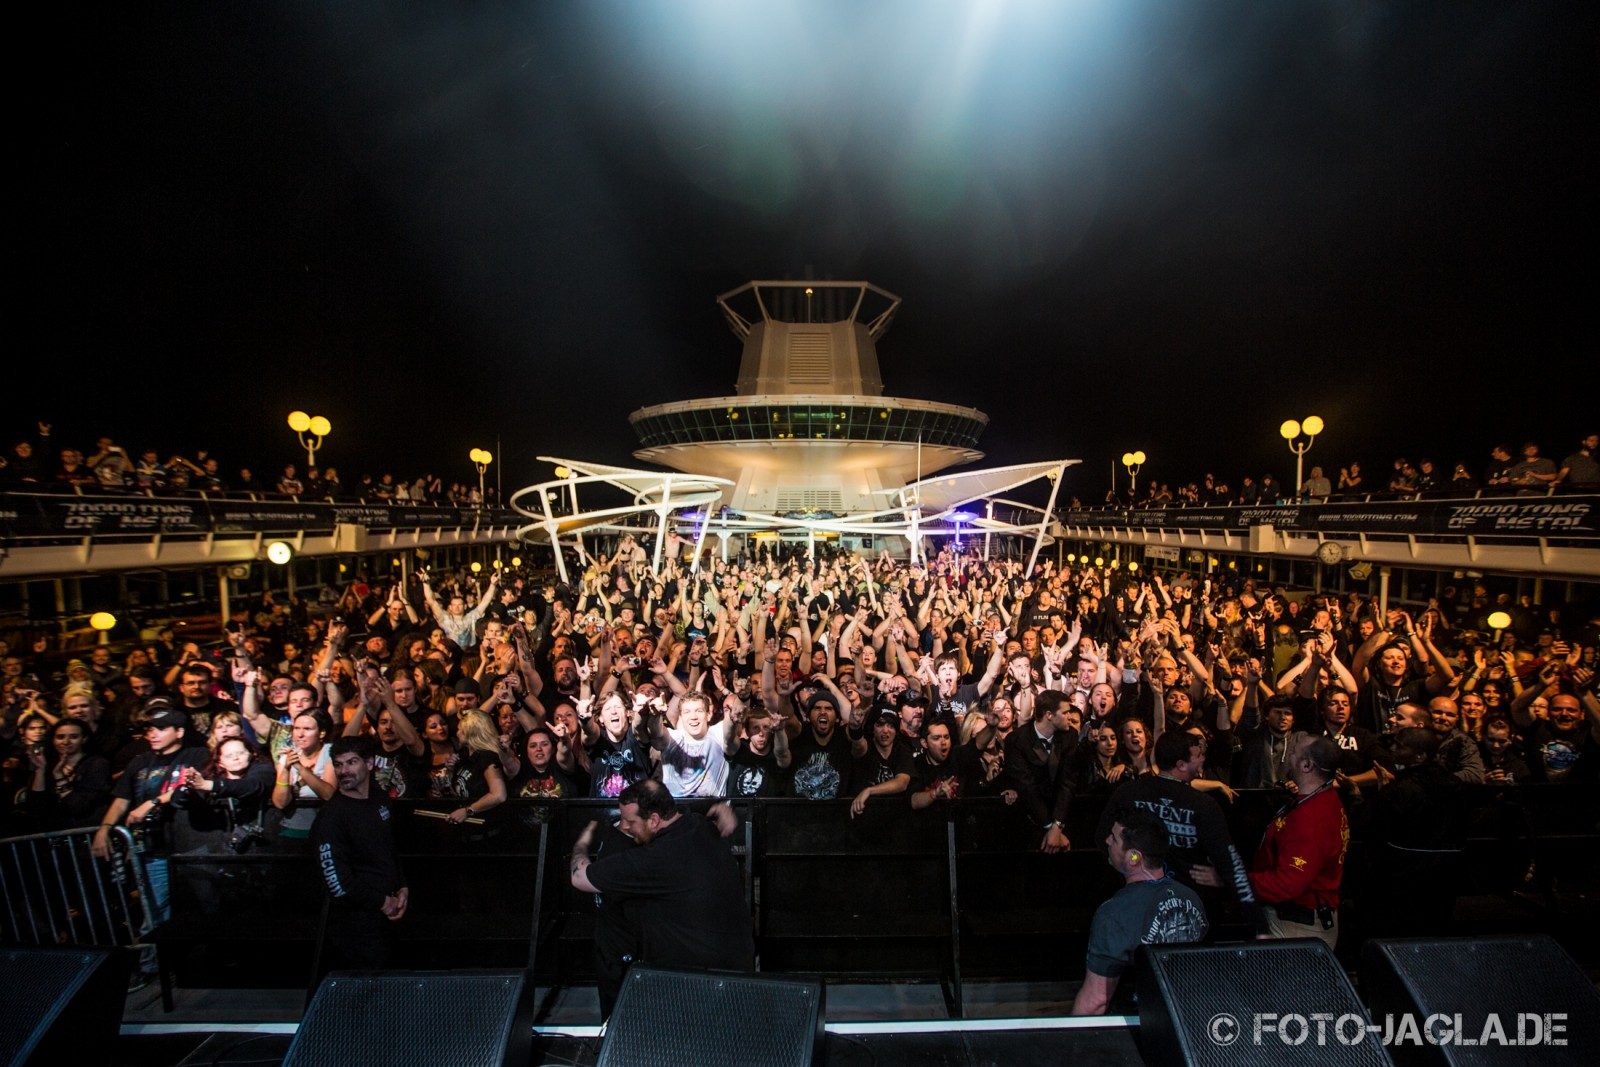 70000 Tons of Metal 2013 ::. Crowd after In Flames Show ::. http://www.foto-jagla.de